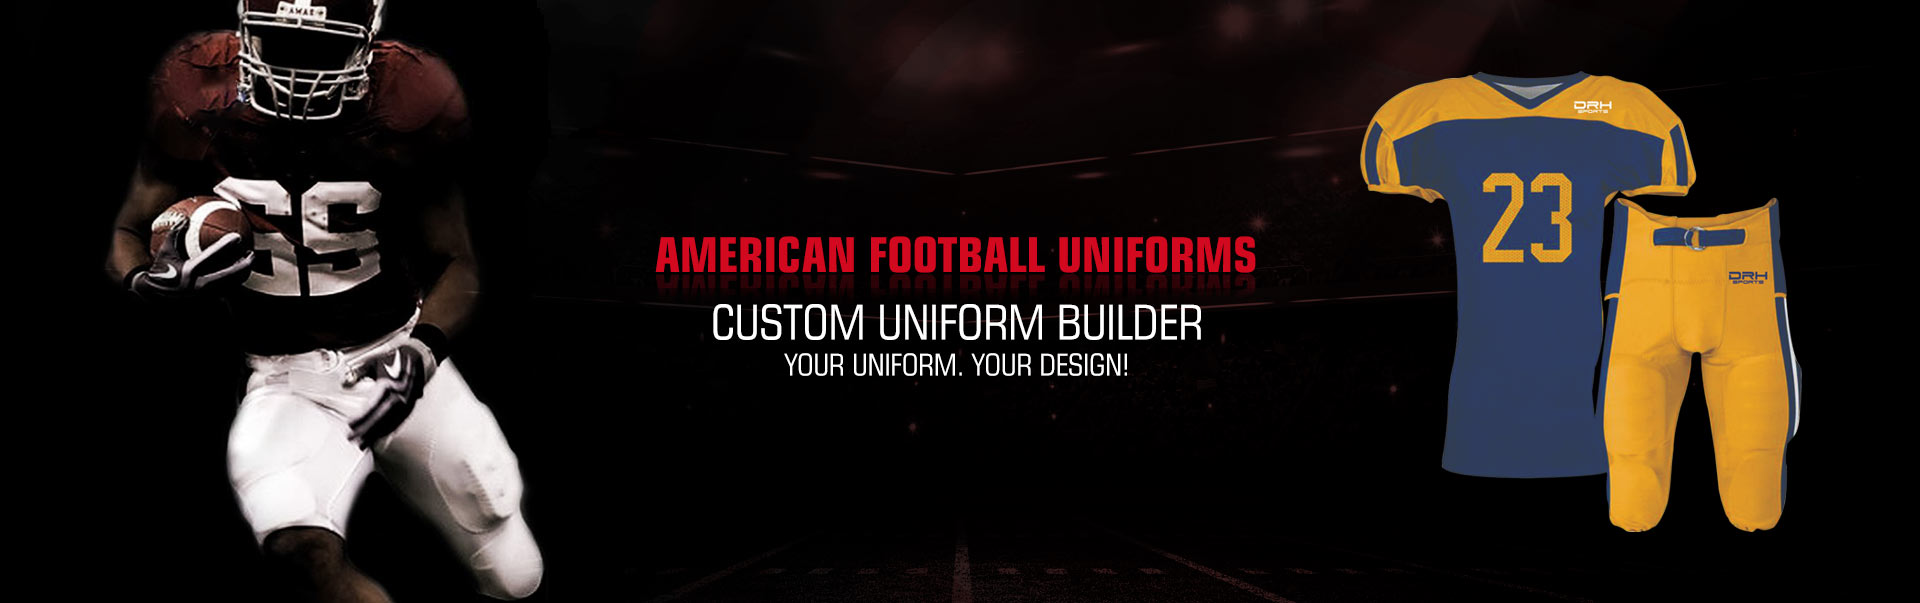 American Football Uniform Wholesaler, Suppliers in China